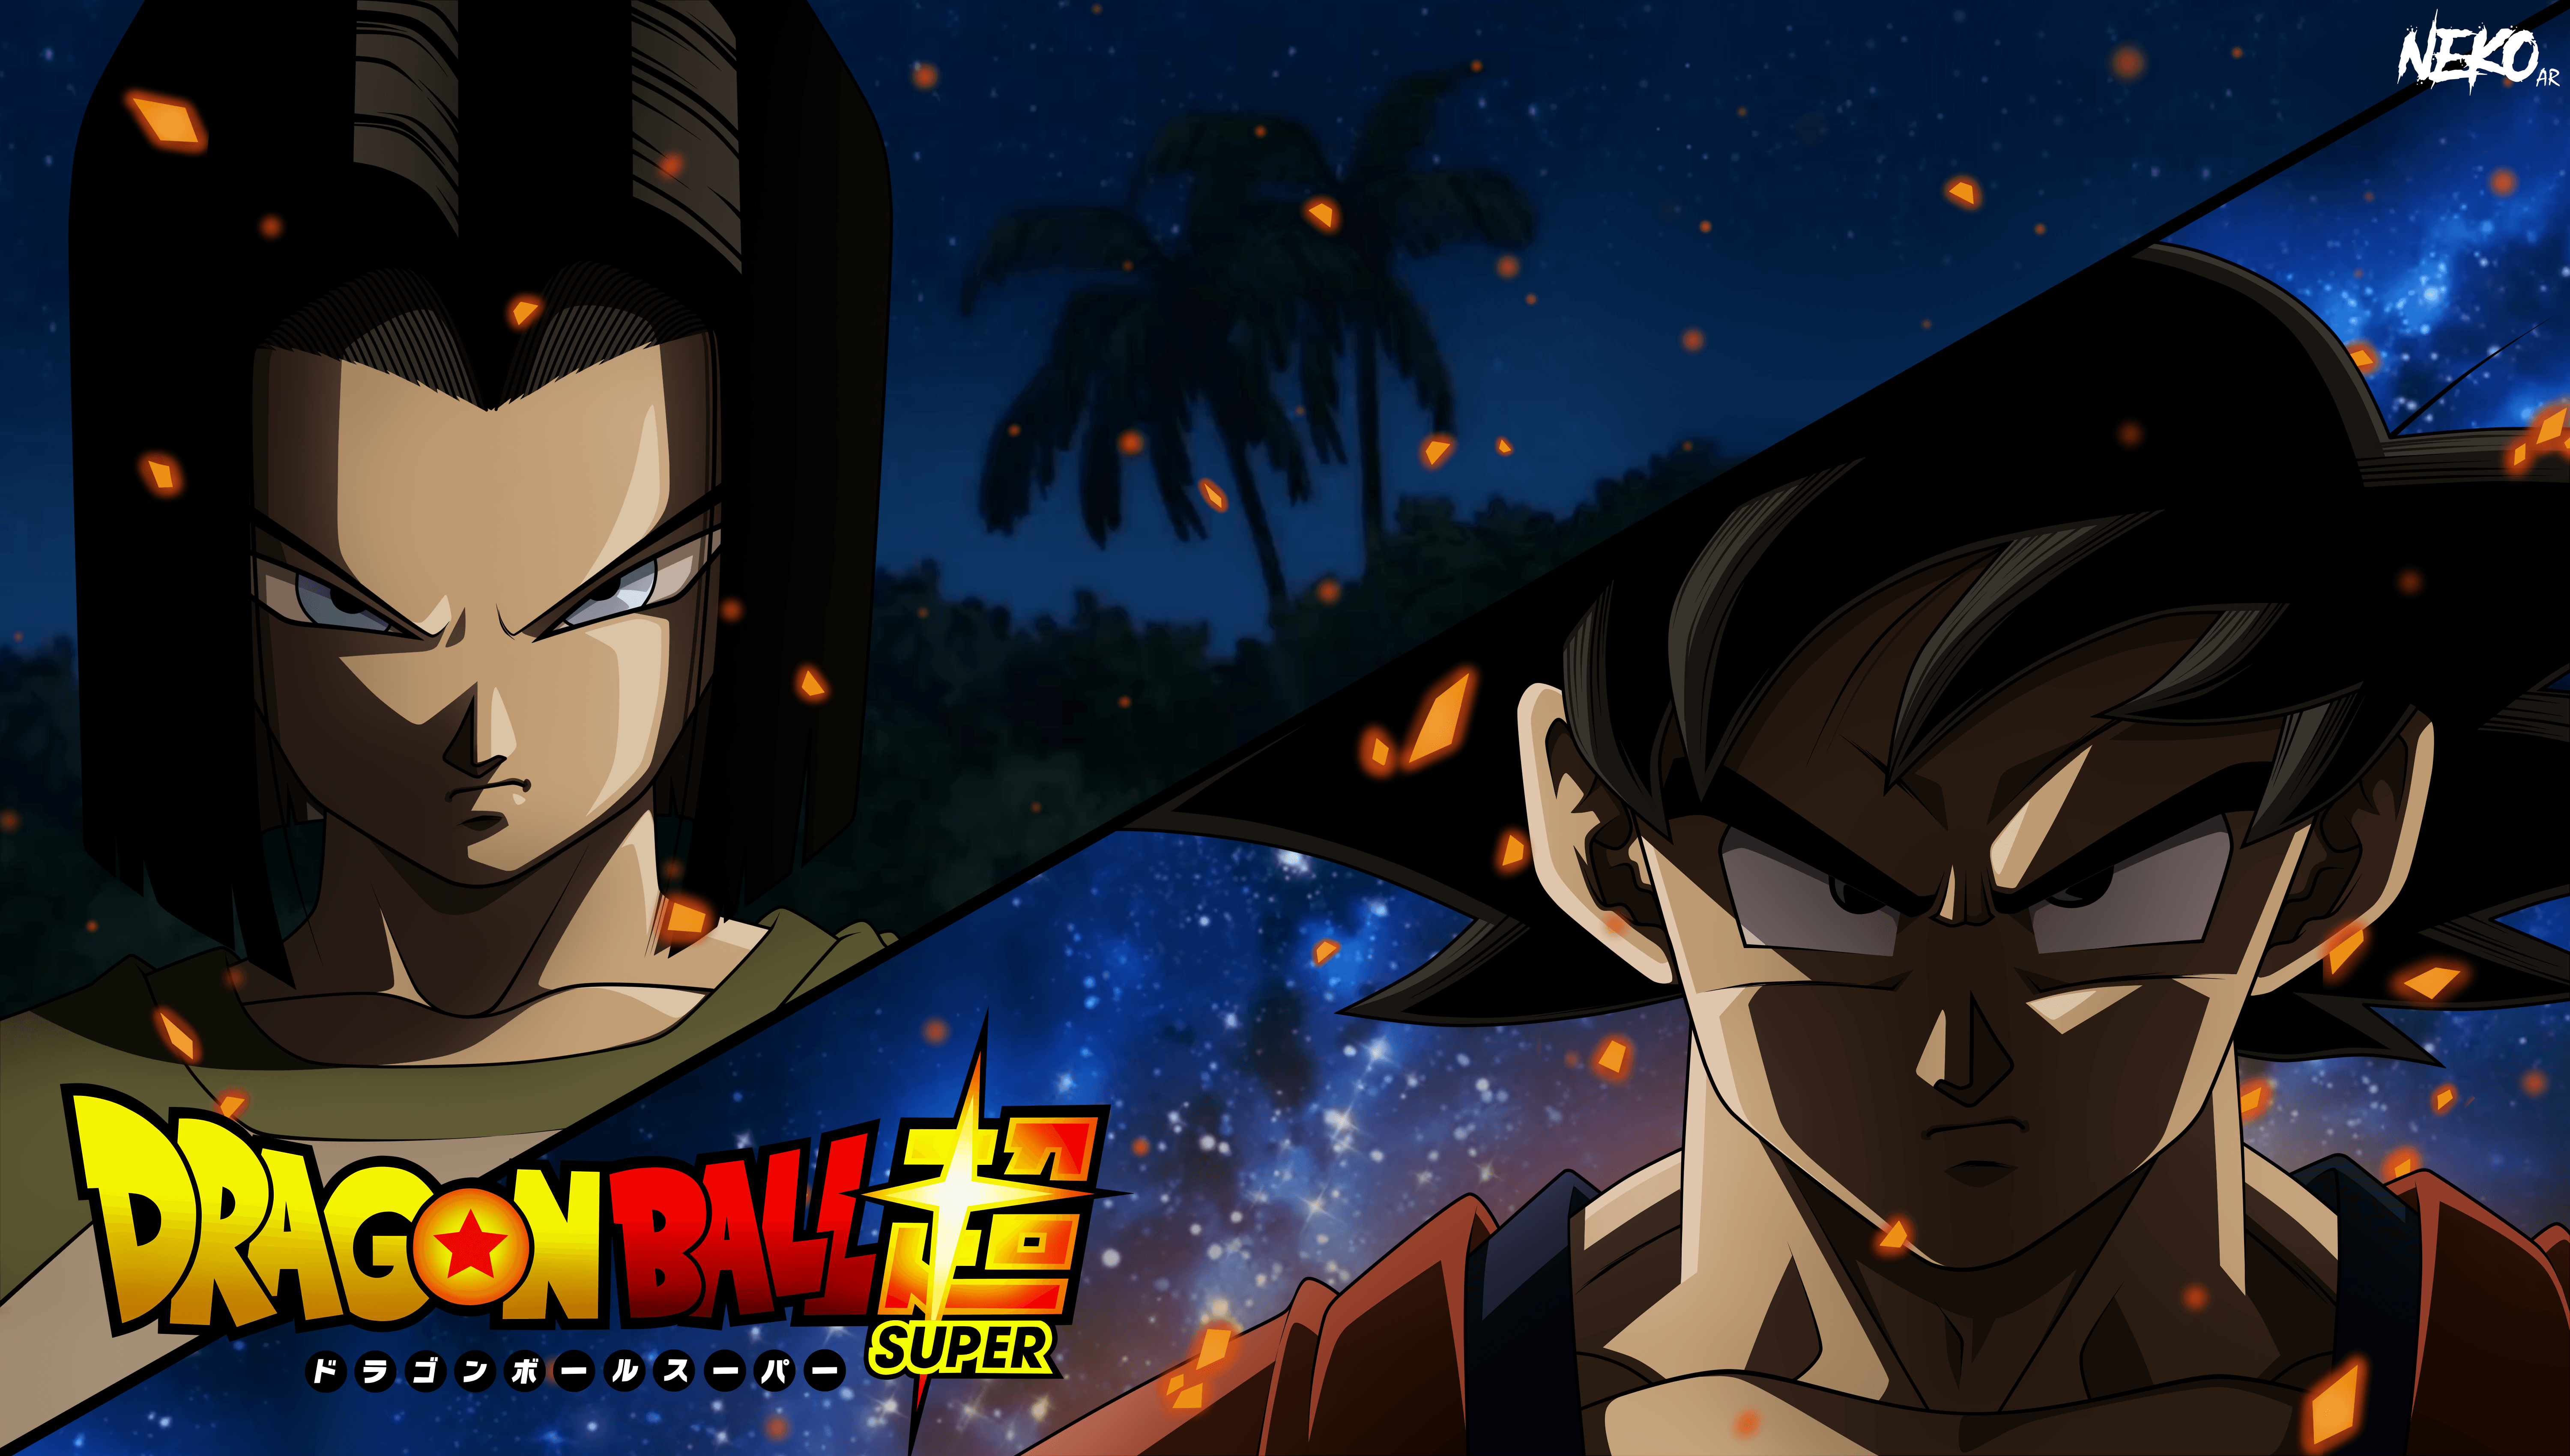 Dragon Ball Super Wallpaper Android: Android 17 Wallpapers